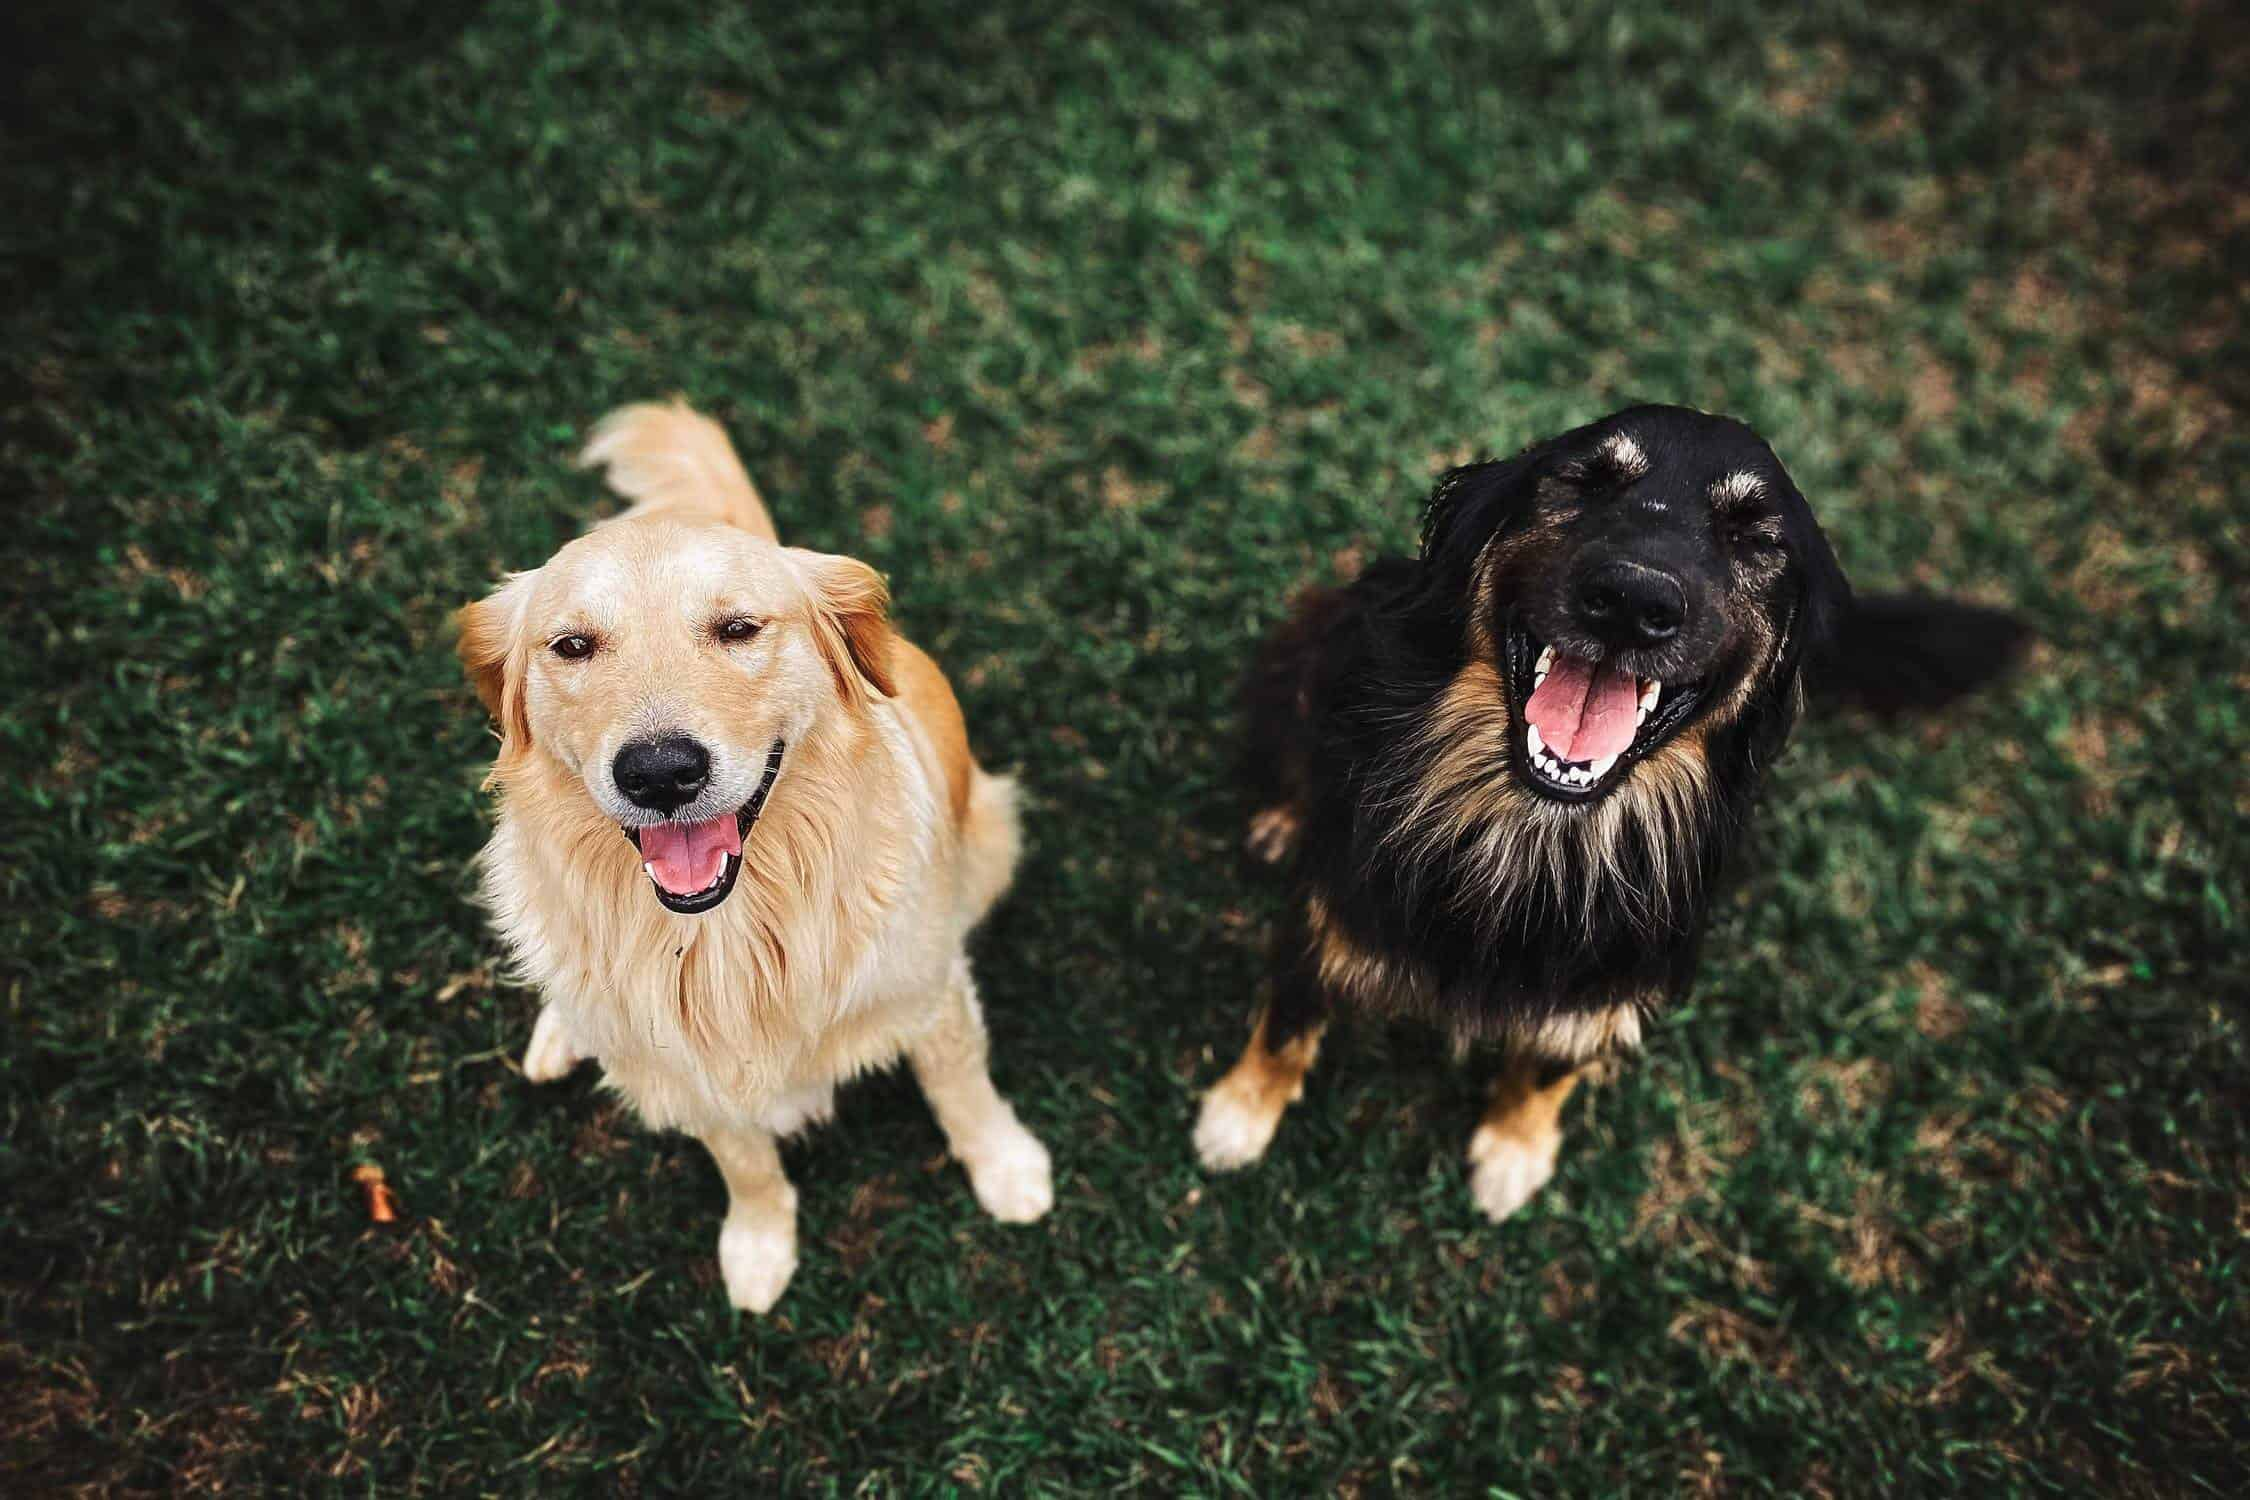 How to Introduce Dogs - dog socialization